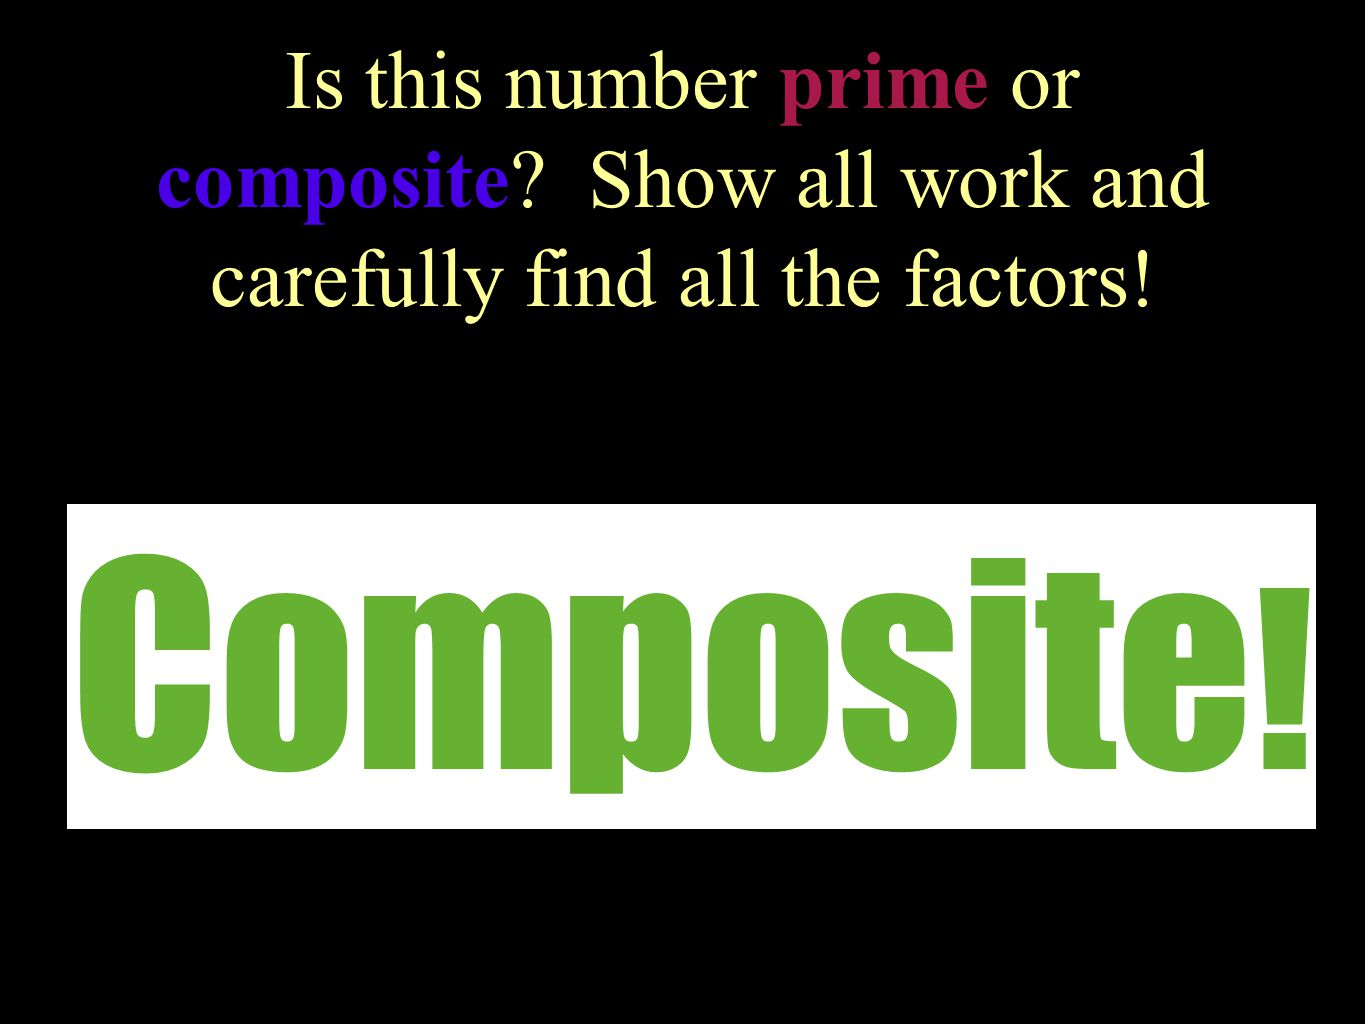 Is this number prime or composite